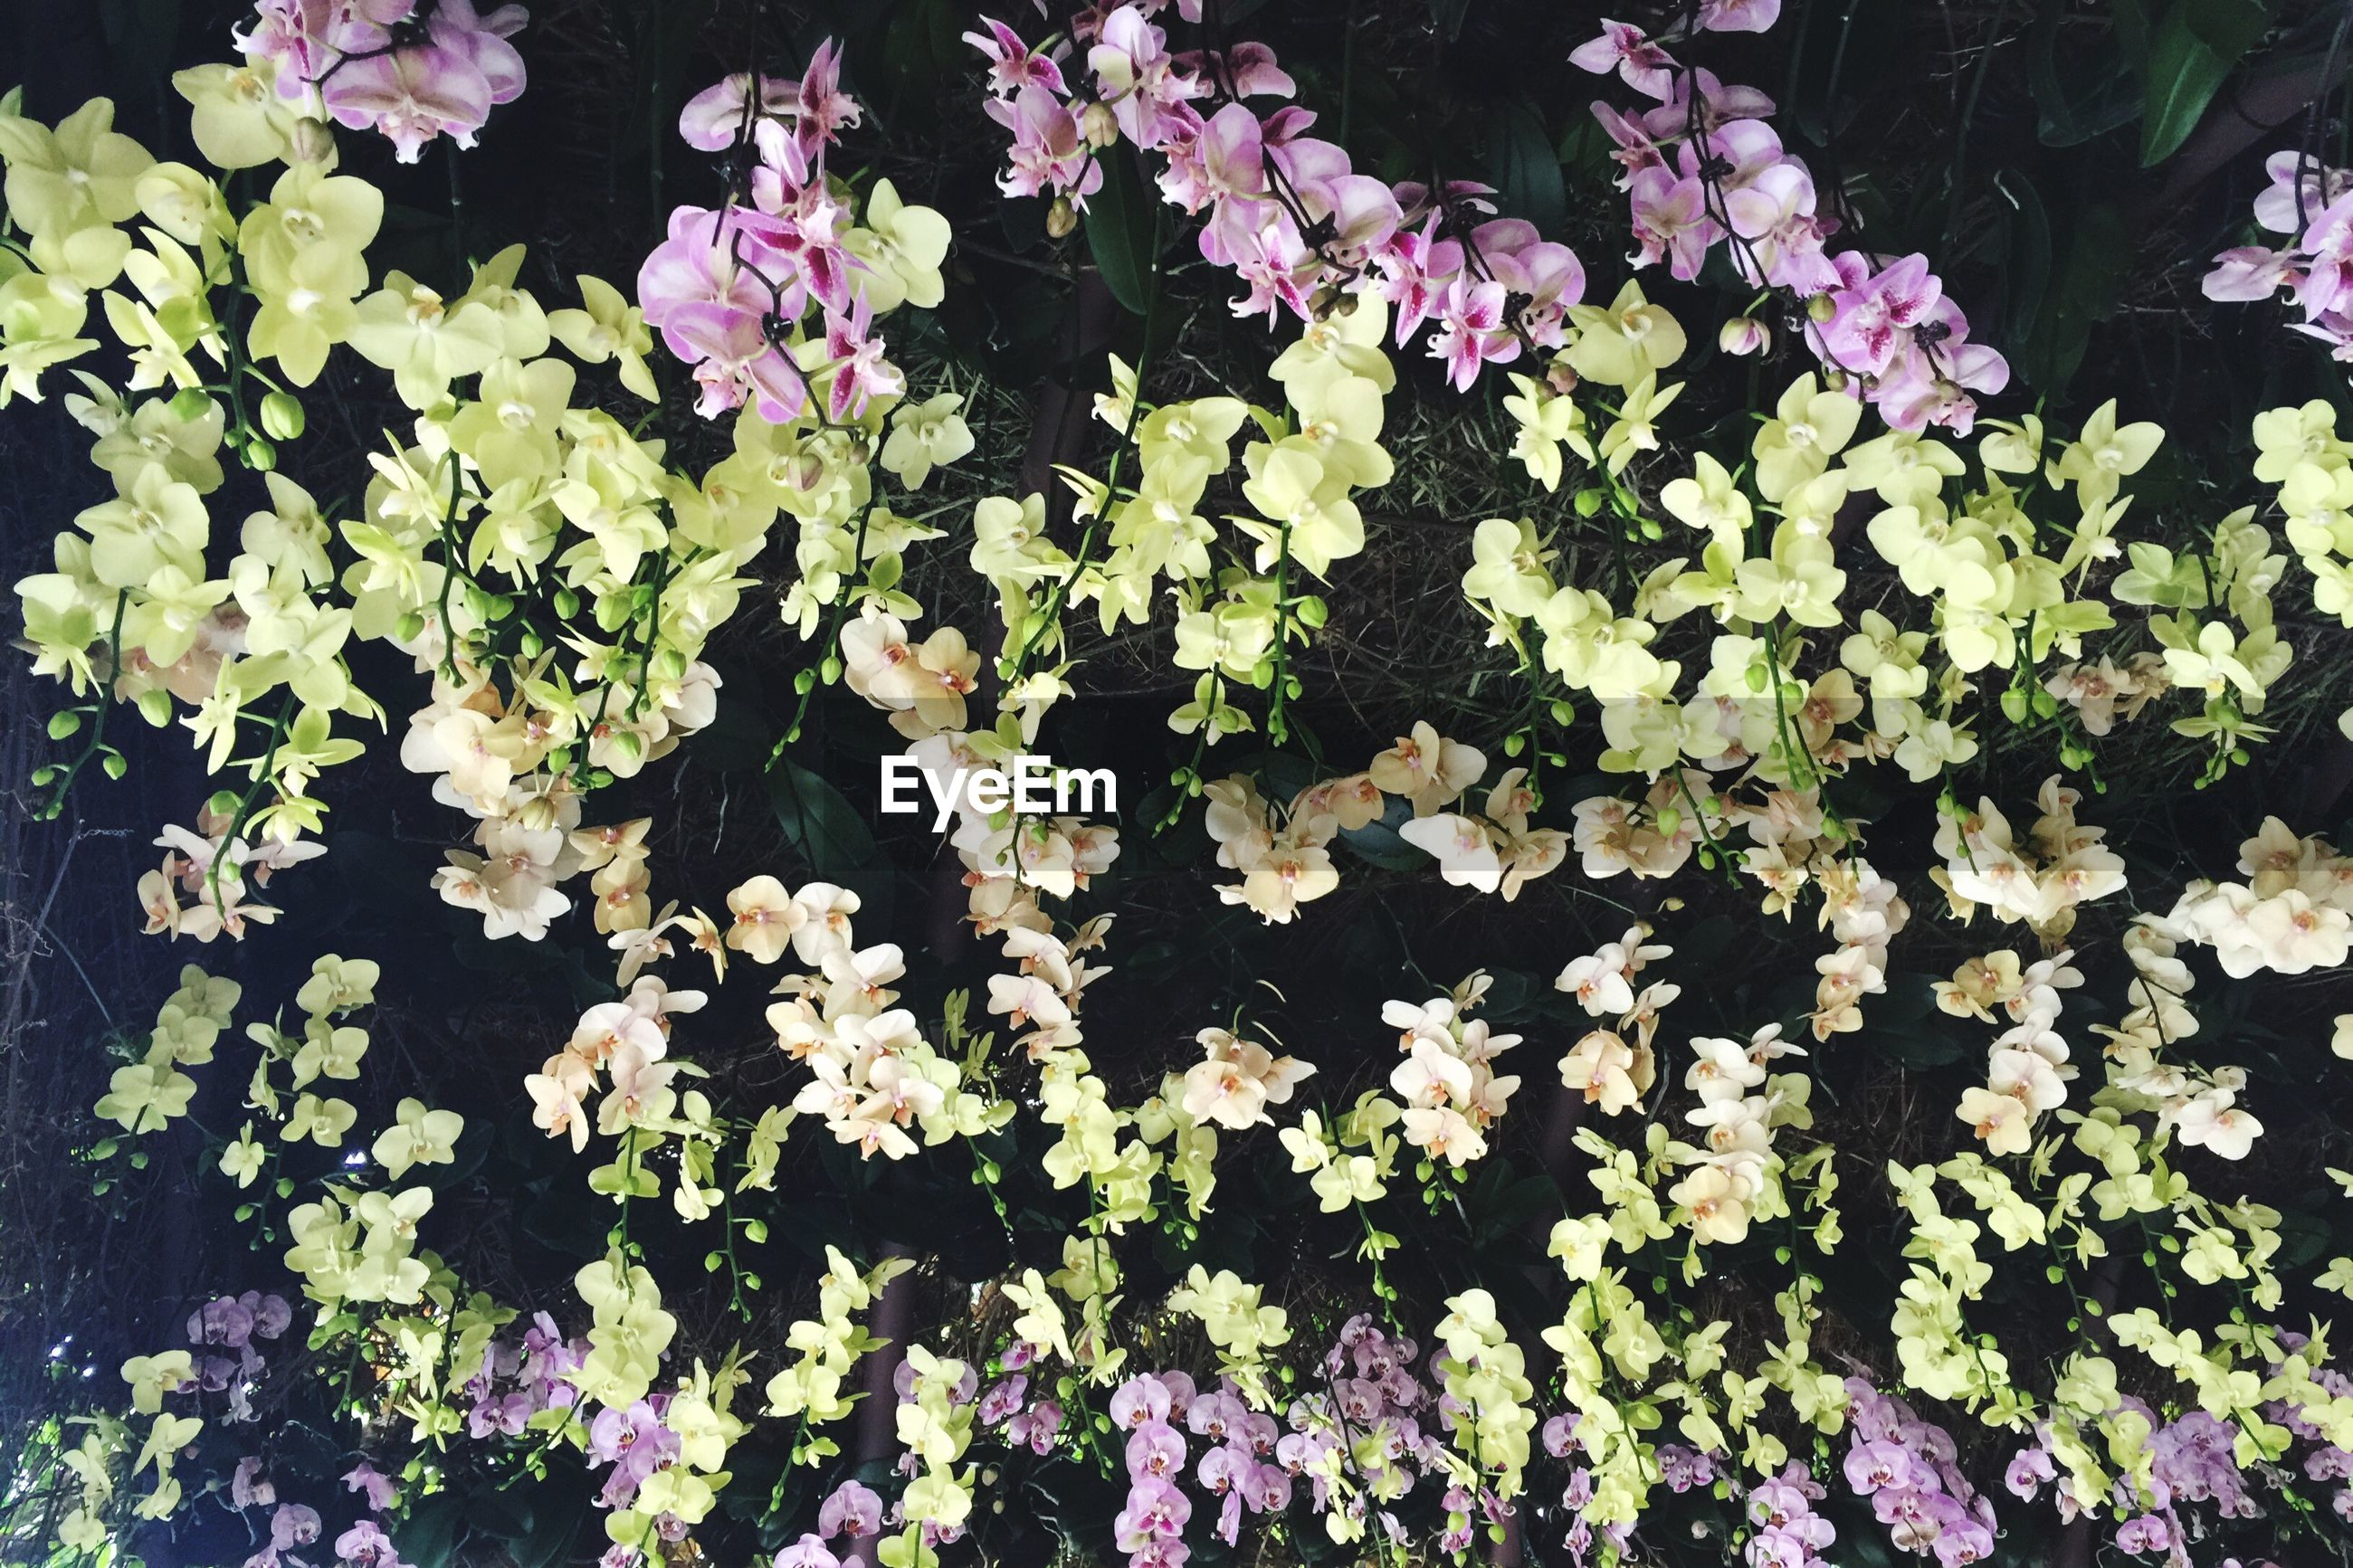 Upside down image of orchids blooming on field